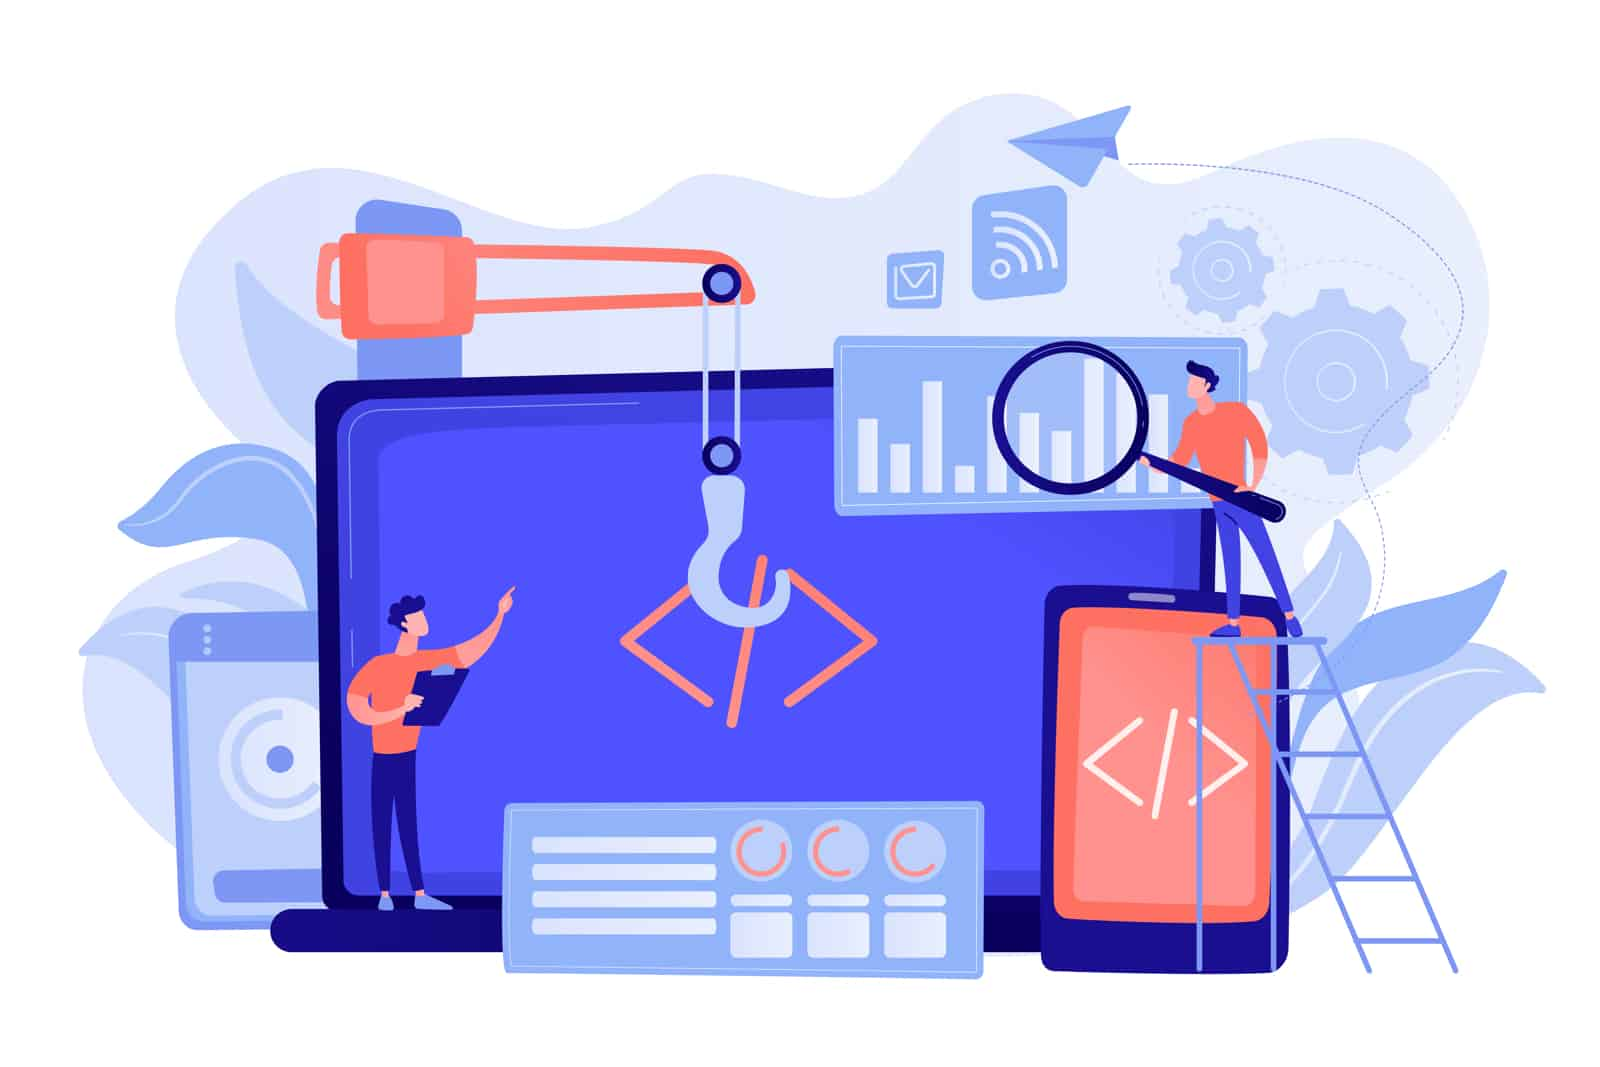 Engineer and developer with laptop and tablet code. Cross-platform development, cross-platform operating systems and software environments concept. Pinkish coral bluevector isolated illustration